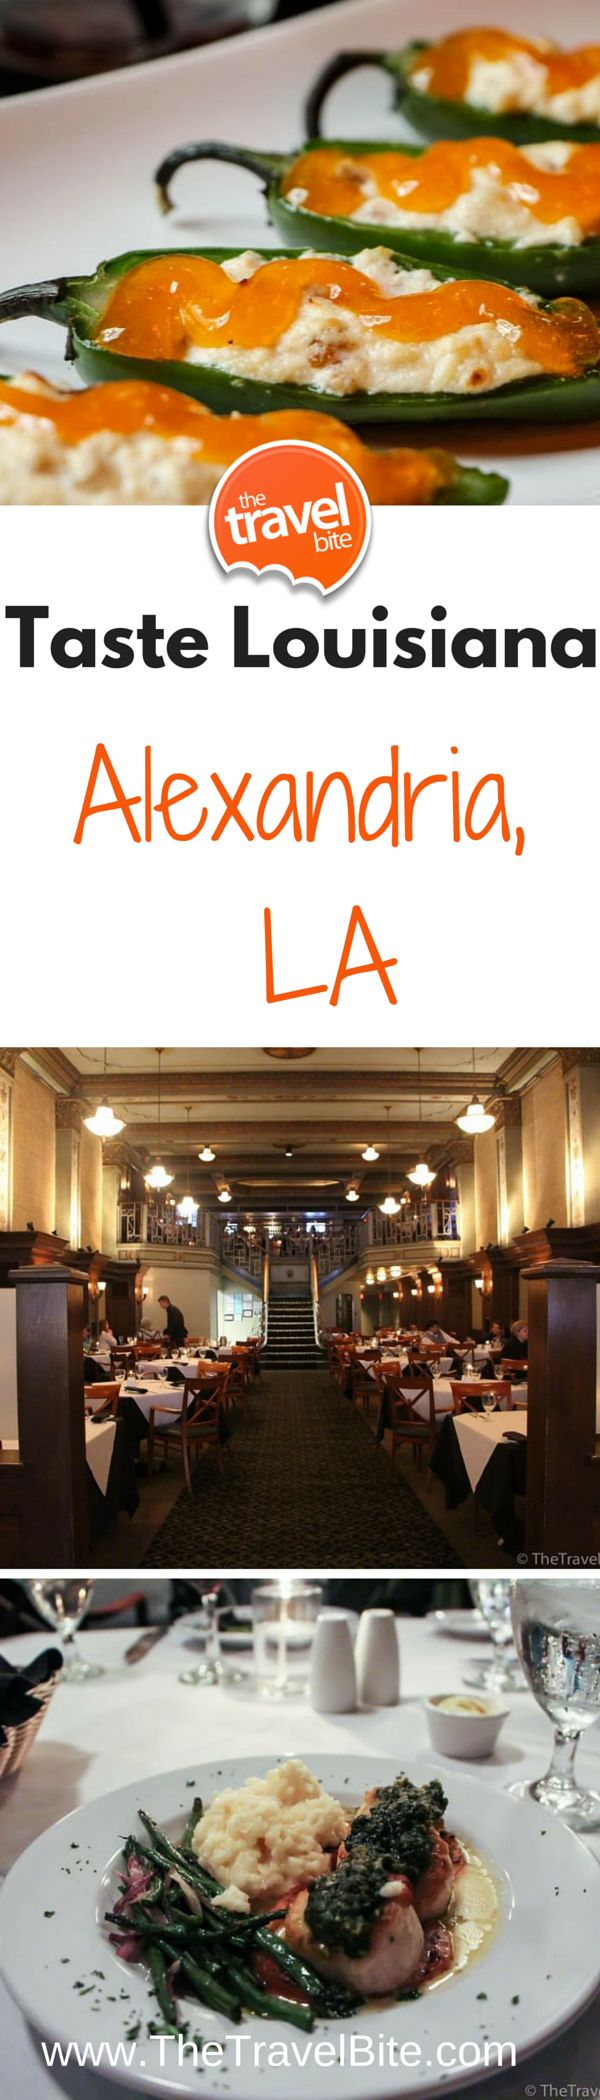 I must confess, I had not heard of Alexandria before Louisiana Tourism invited me to explore their culinary trails, but I'm so thankful for the introduction as it's a great destination for two of my favorite things – history and food.